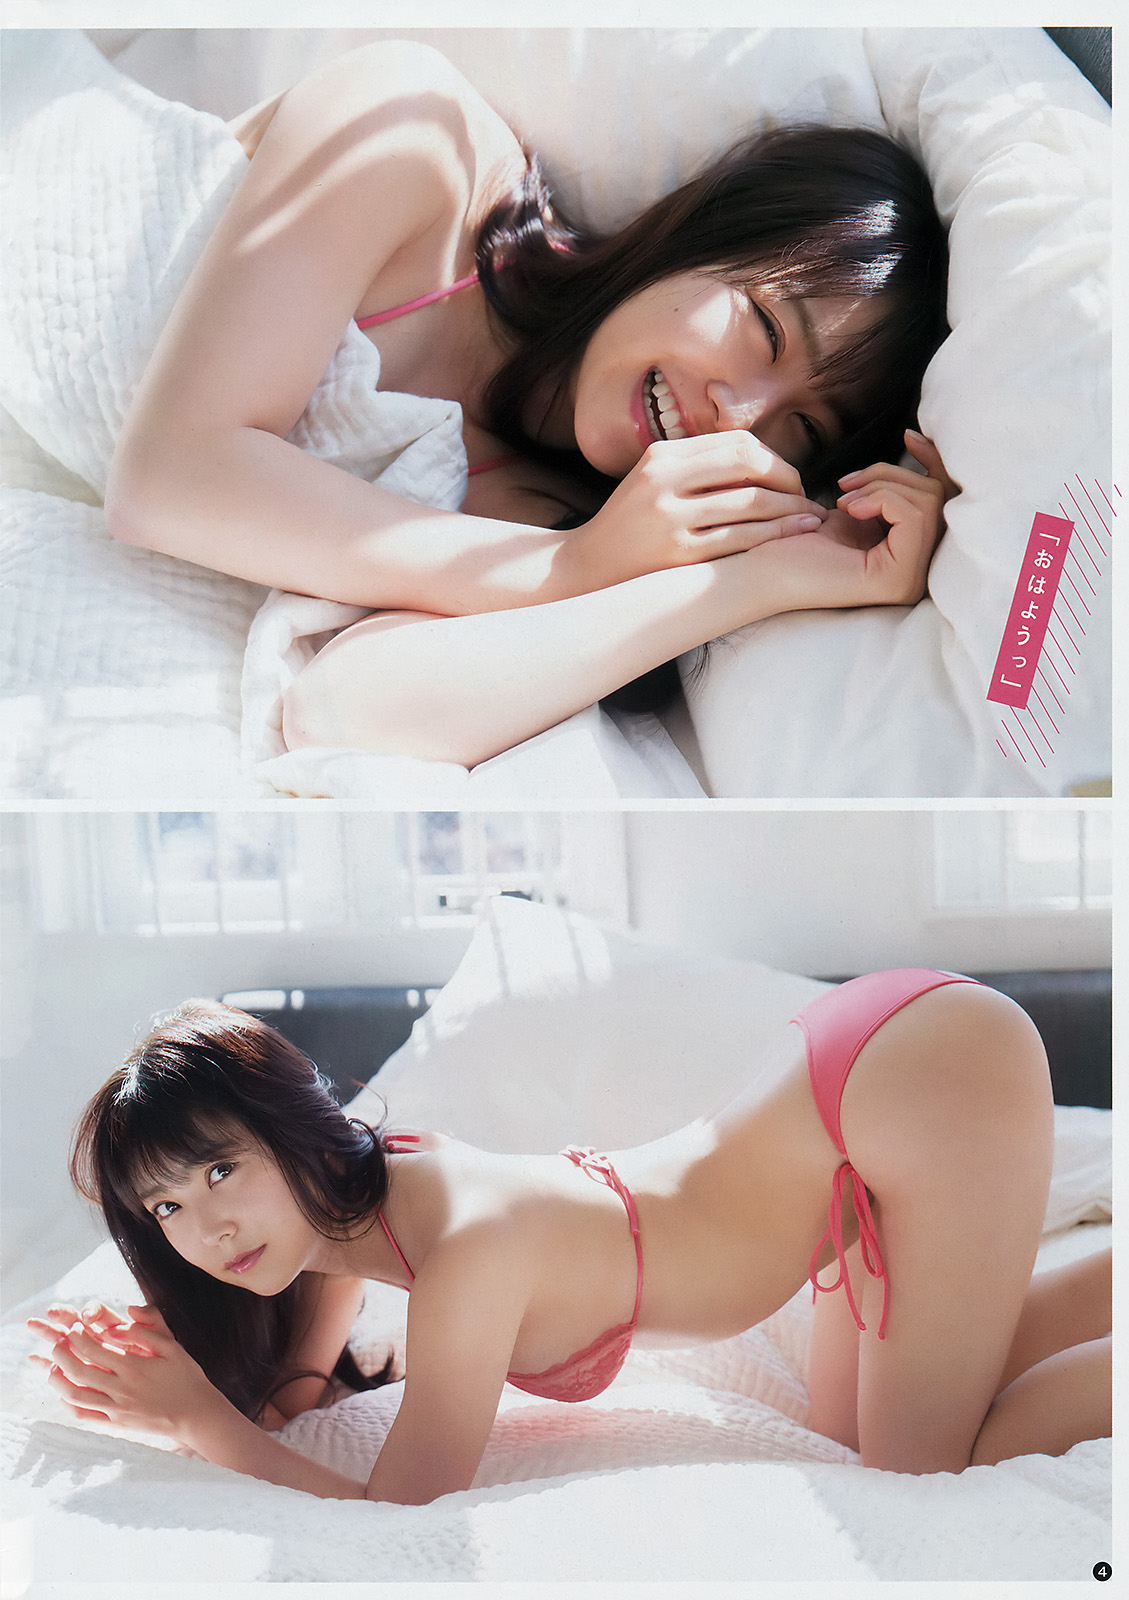 [Young Champion] 2018 No.06 - Japanese Gravure Idol Young Champion Shiroma Miru Japanese Girls Japanese gravure